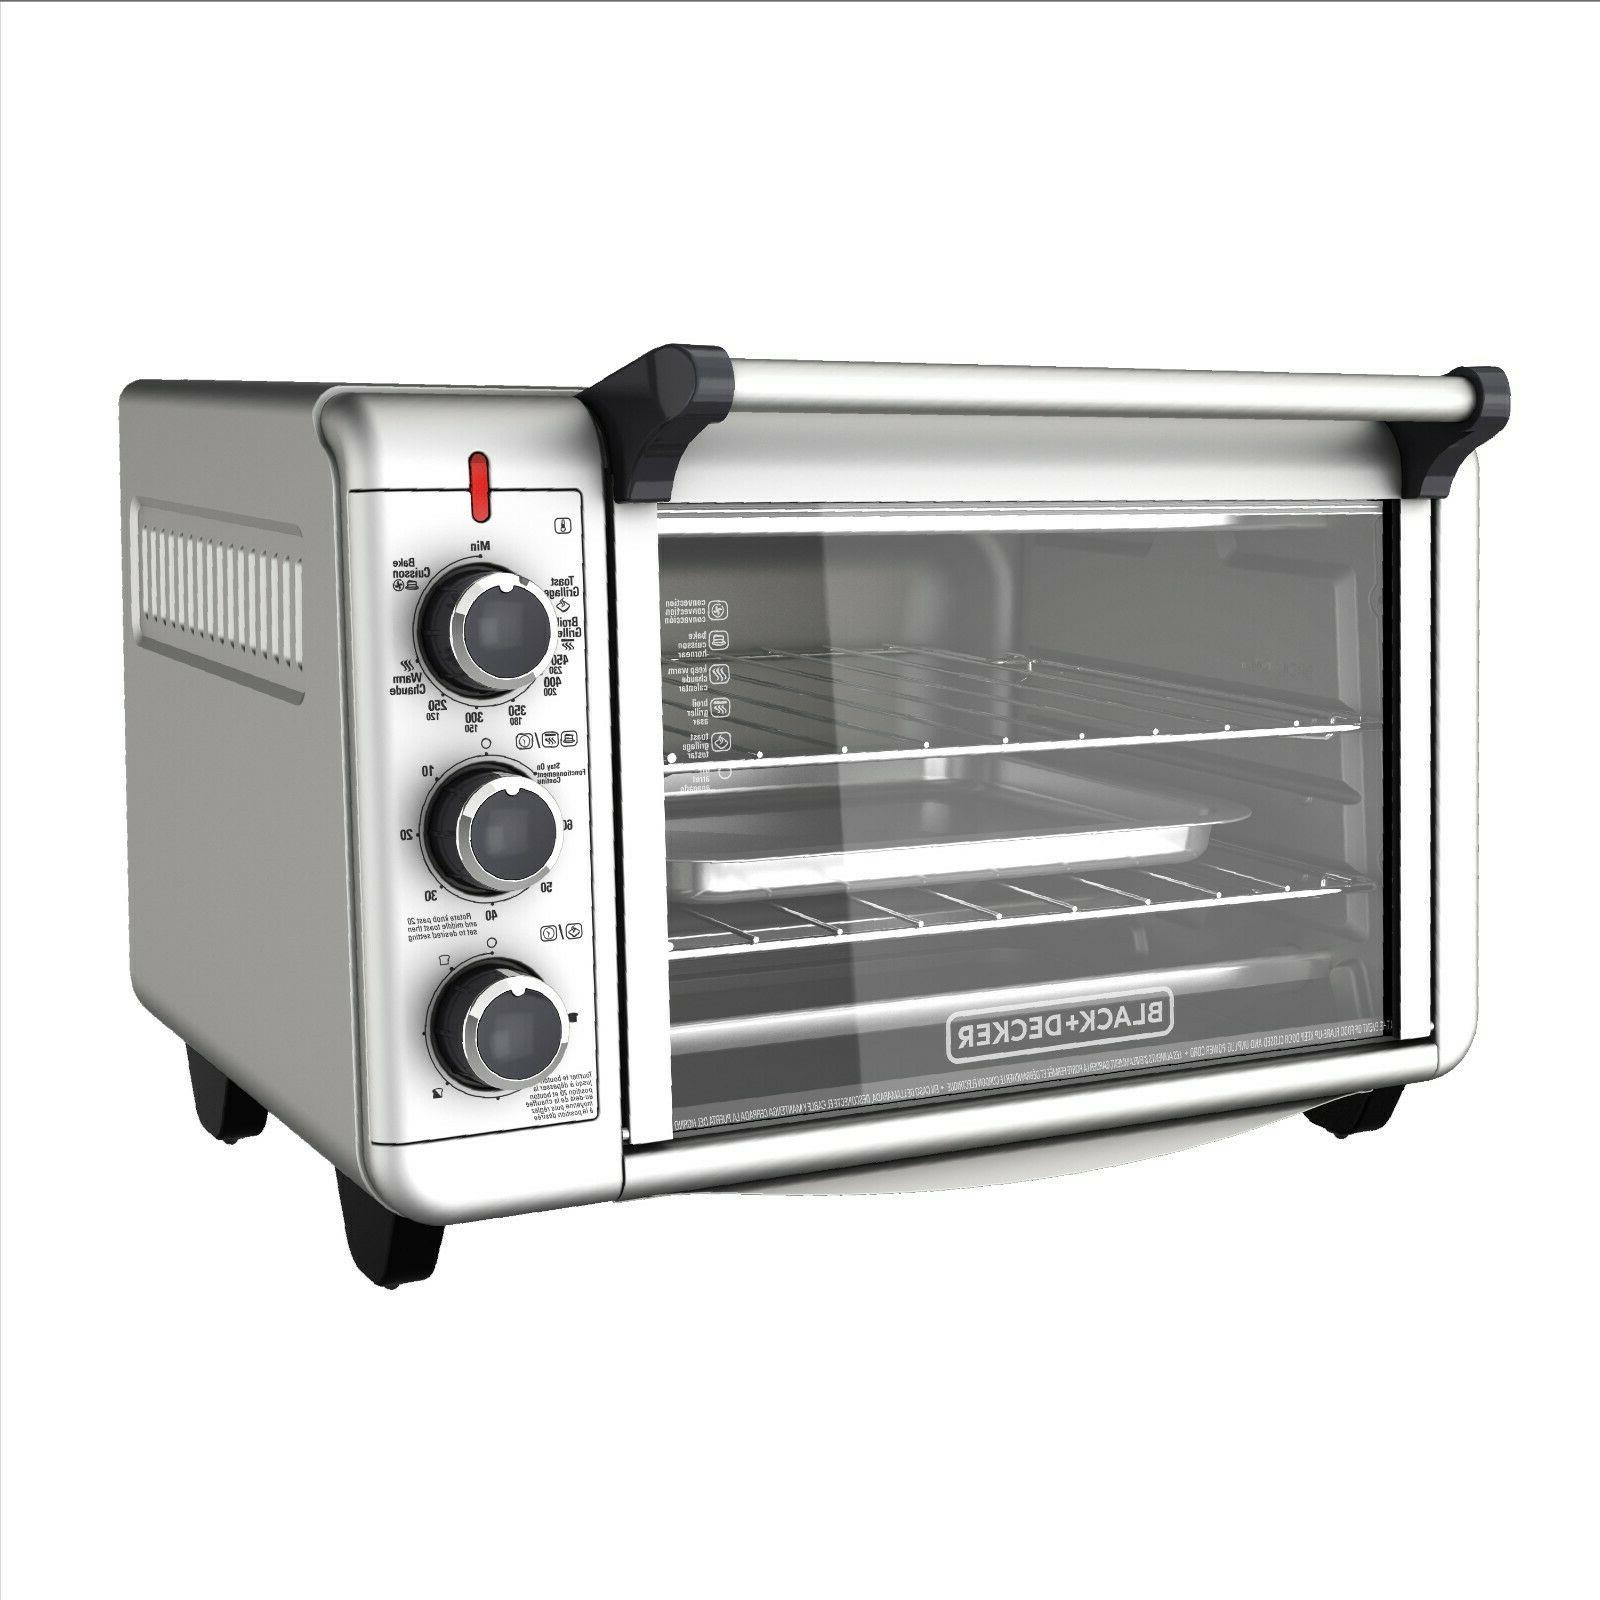 Countertop CONVECTION OVEN Toaster Stainless Broiling